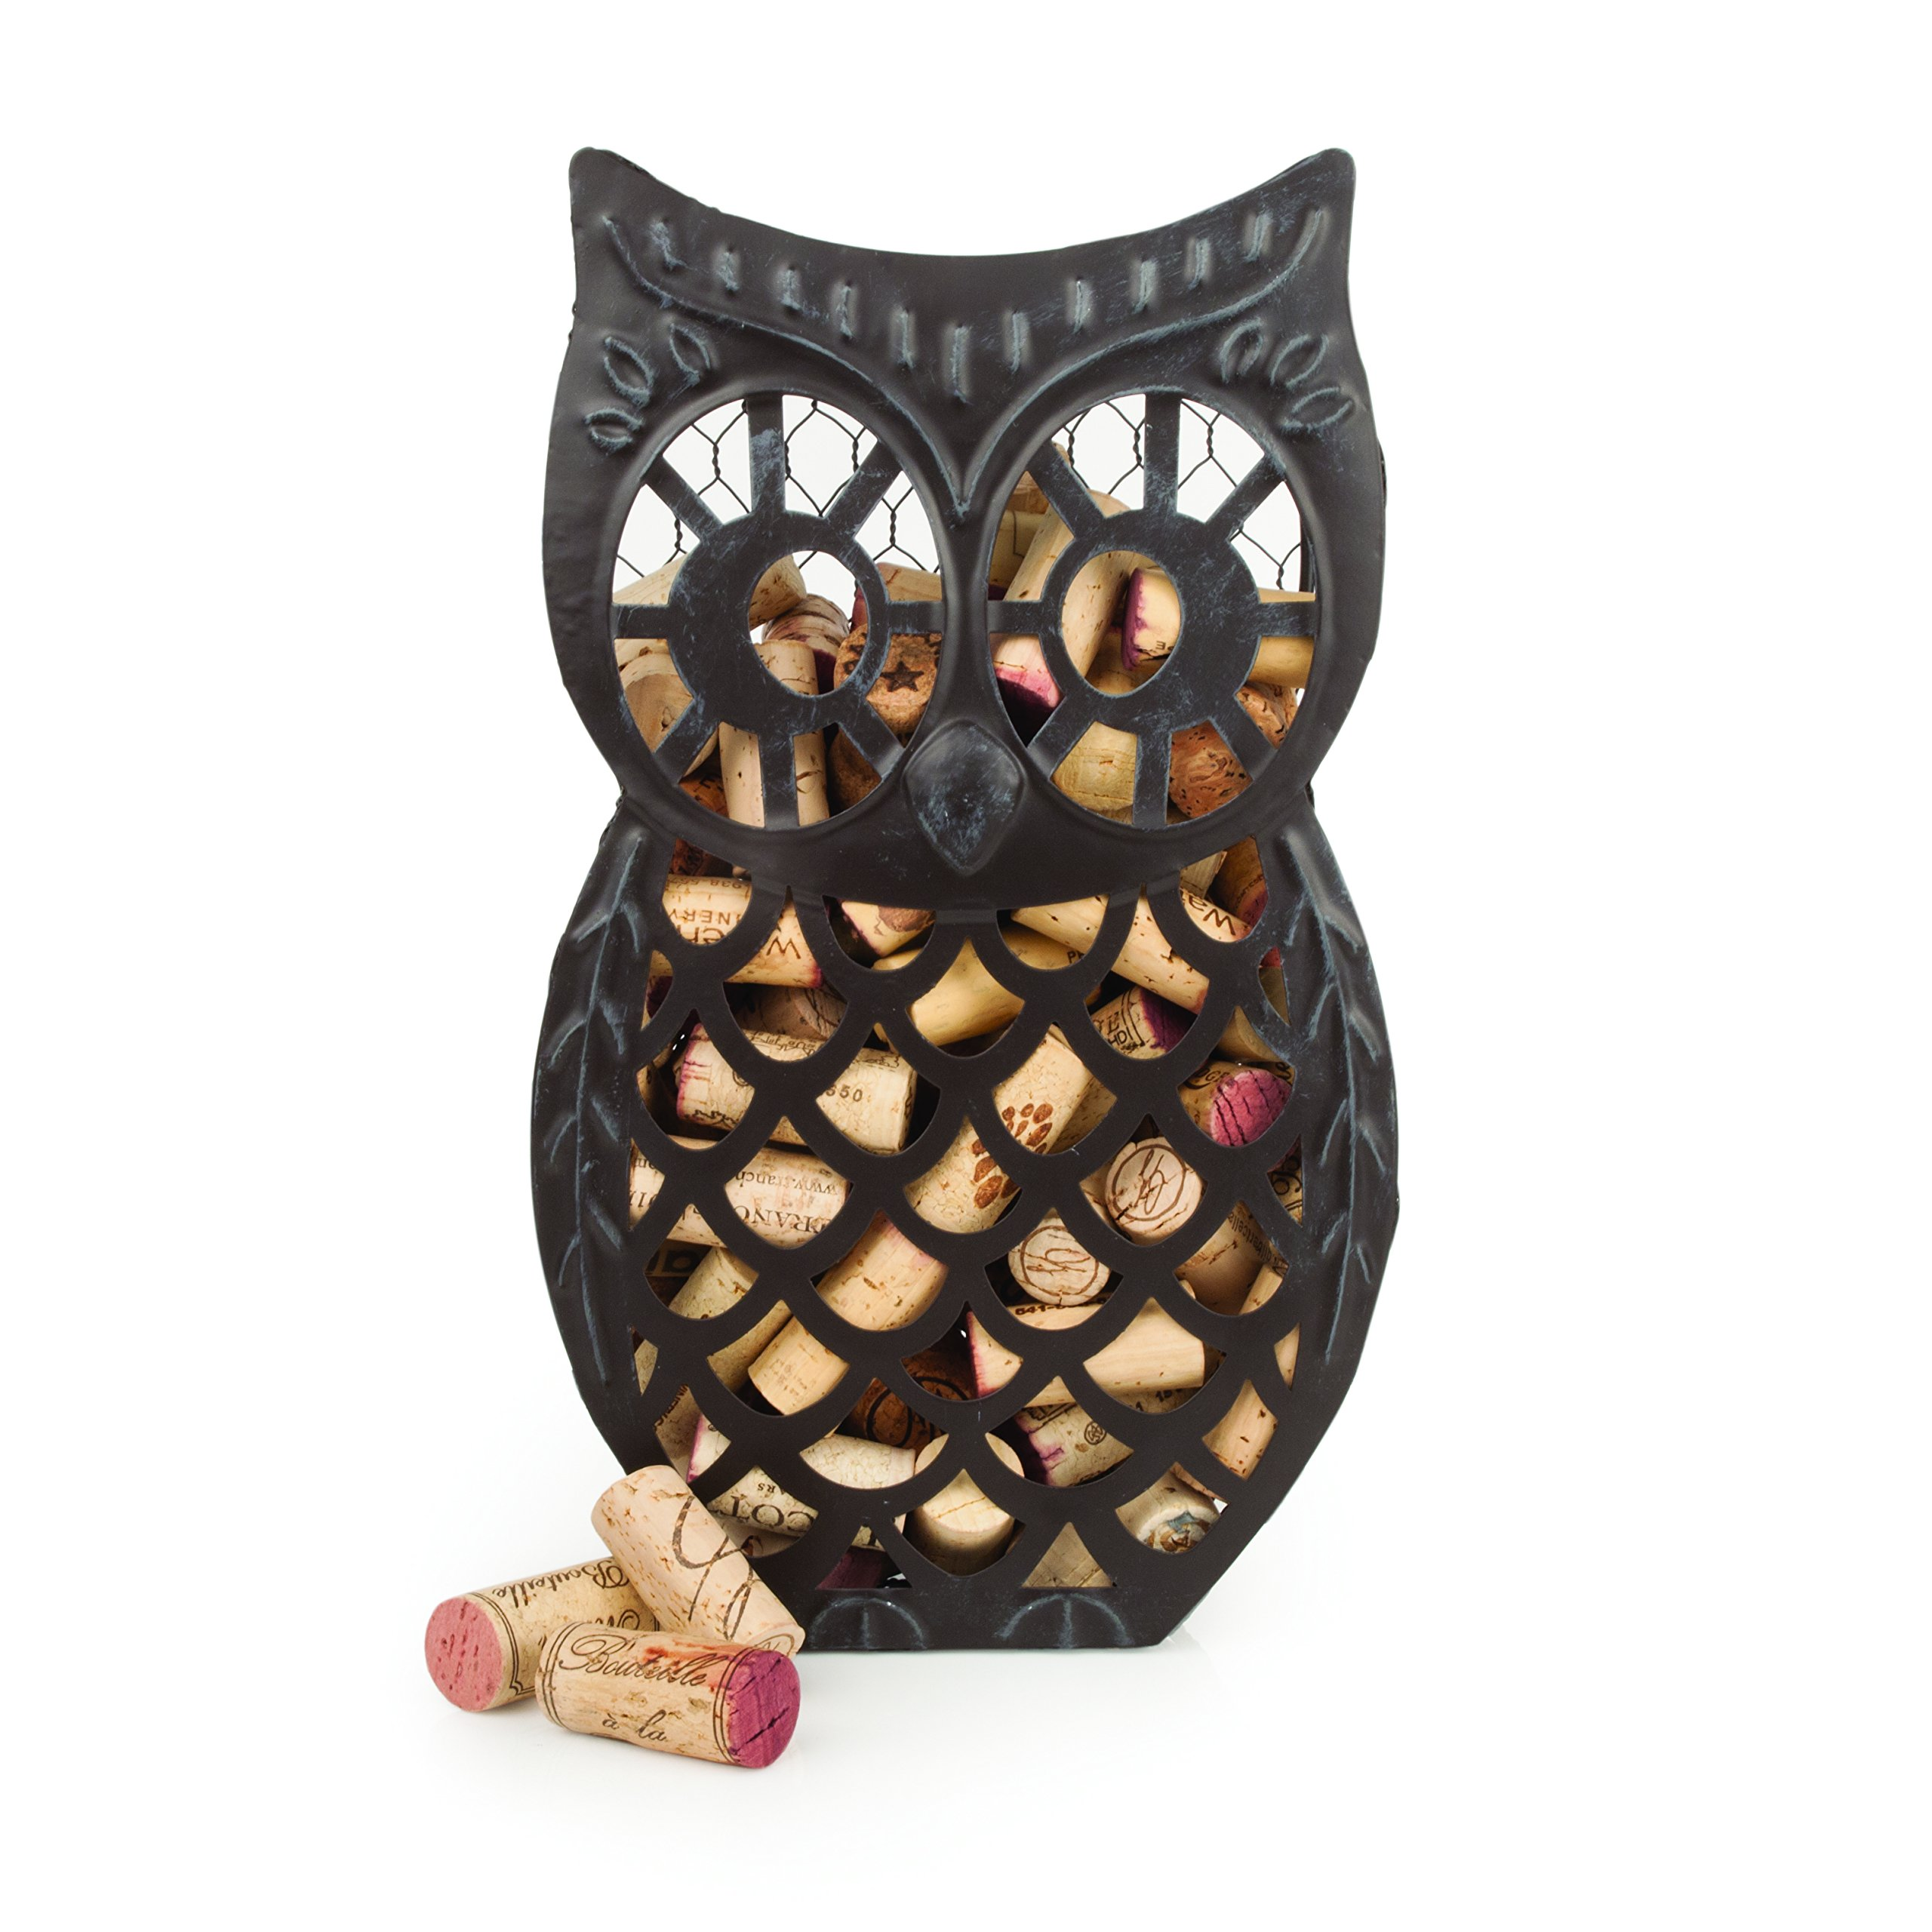 Country Cottage Wise Owl Distressed Metal Cork Collector by Twine